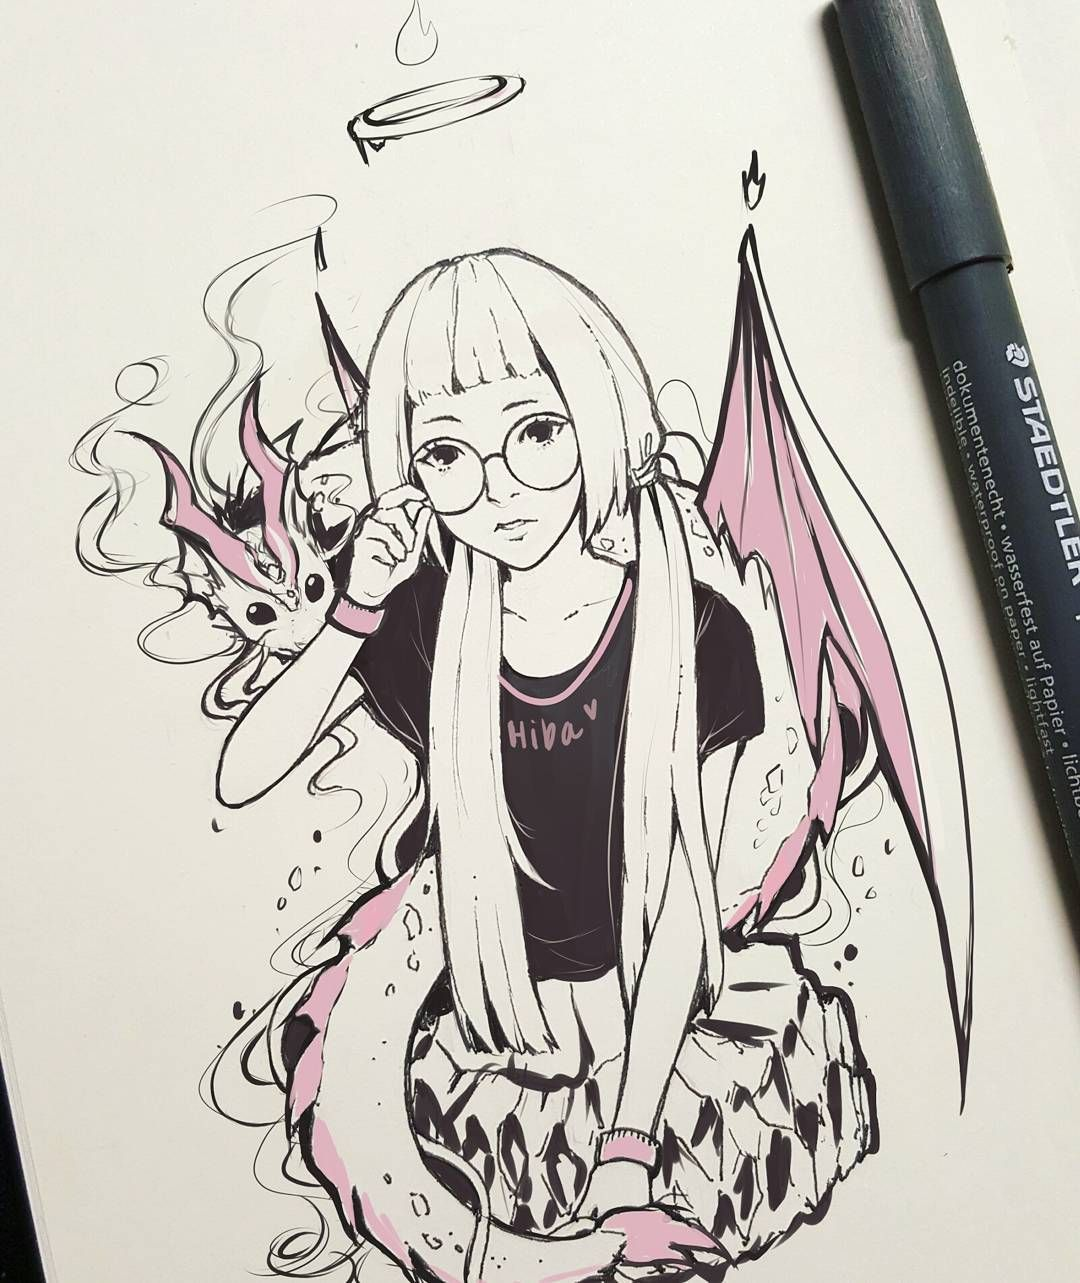 "#inktober day 5 Ok so I showed this drawing to a friend and their first reaction was ""wtf is going on in this picture"" xDD I know I failed but this is supposed to be a girl with a smol dragon ; _ ; I've never drawn dragons before so it looks weird xD but I guess it was a good practice QvQ #medtober #mypetdragon #sketchbook (also kinda inspired by @j0uzai I love her hair :3 )"